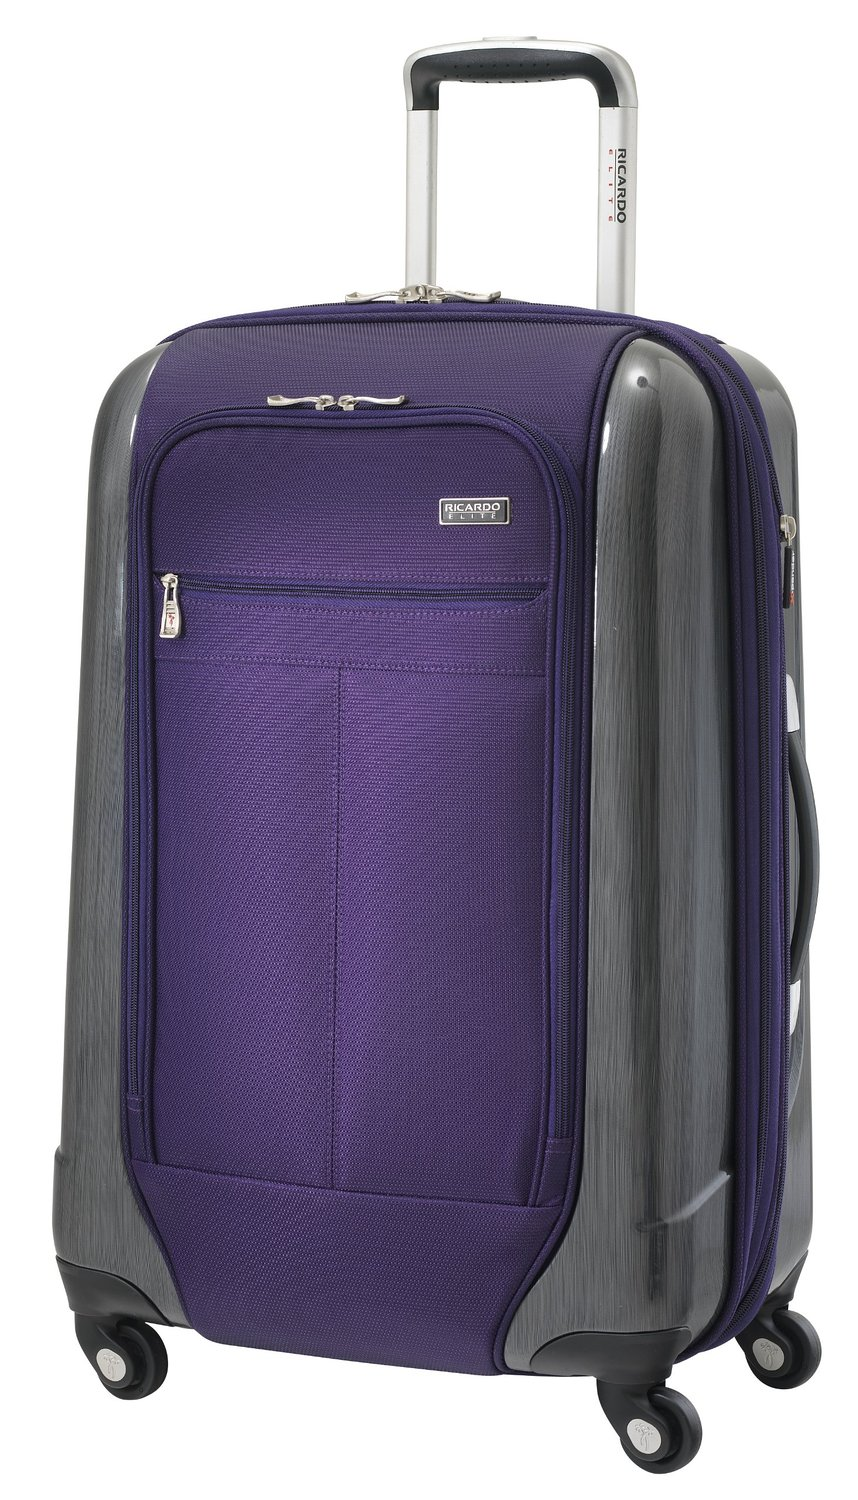 Ricardo Beverly Hills Luggage Crystal City 24 Inch Expandable Spinner Upright Suitcase